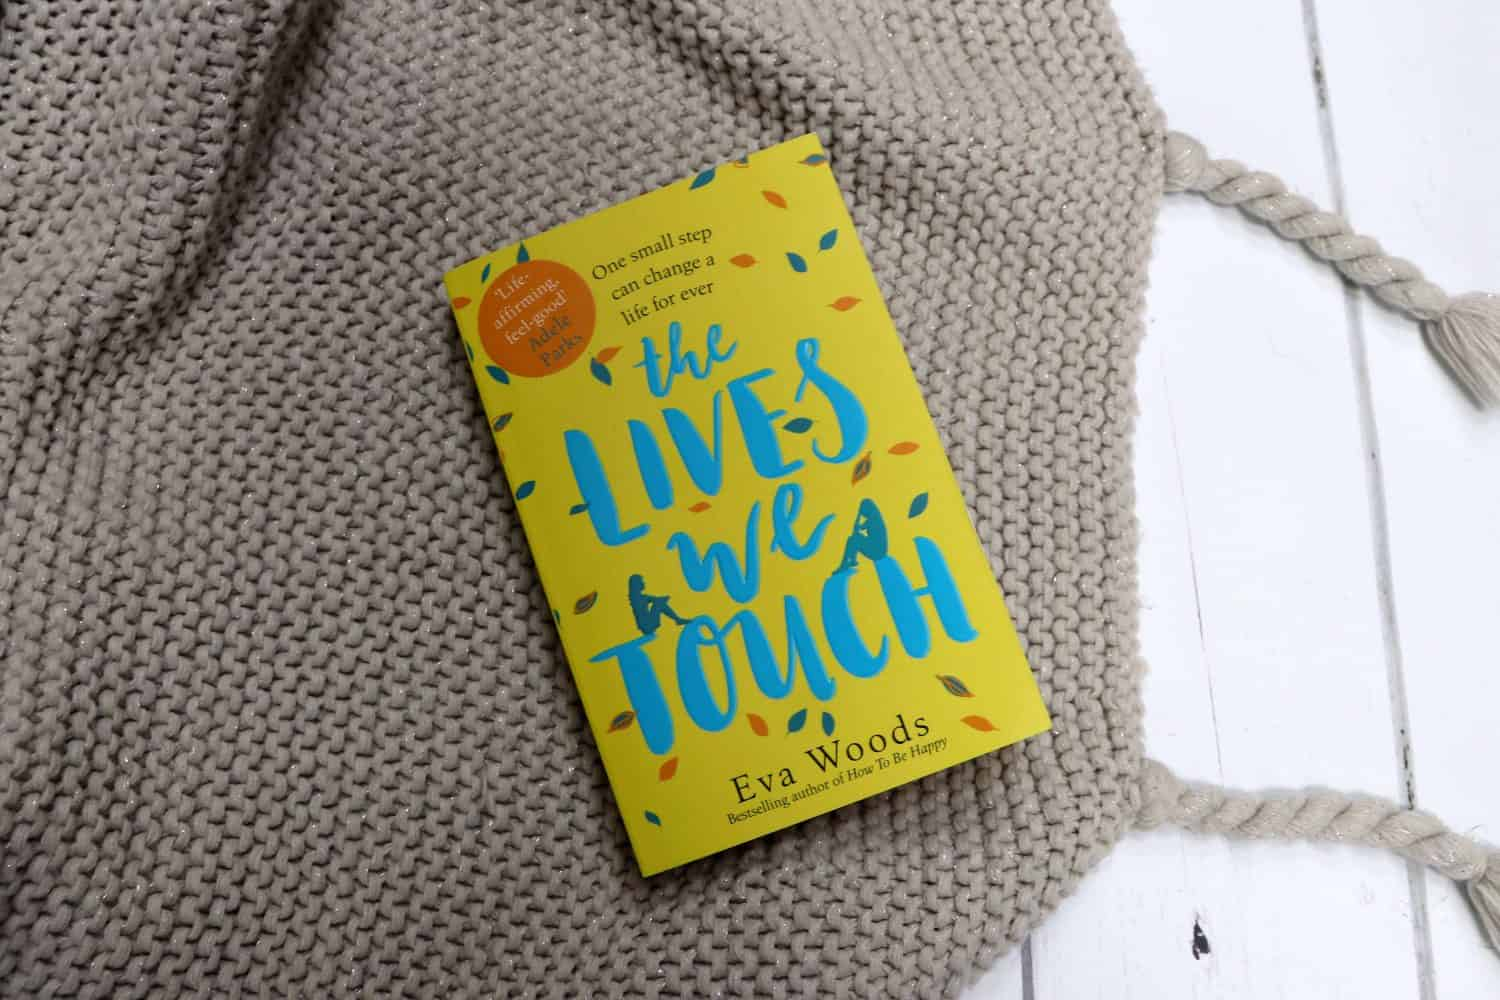 The Lives We Touch - Eva Woods